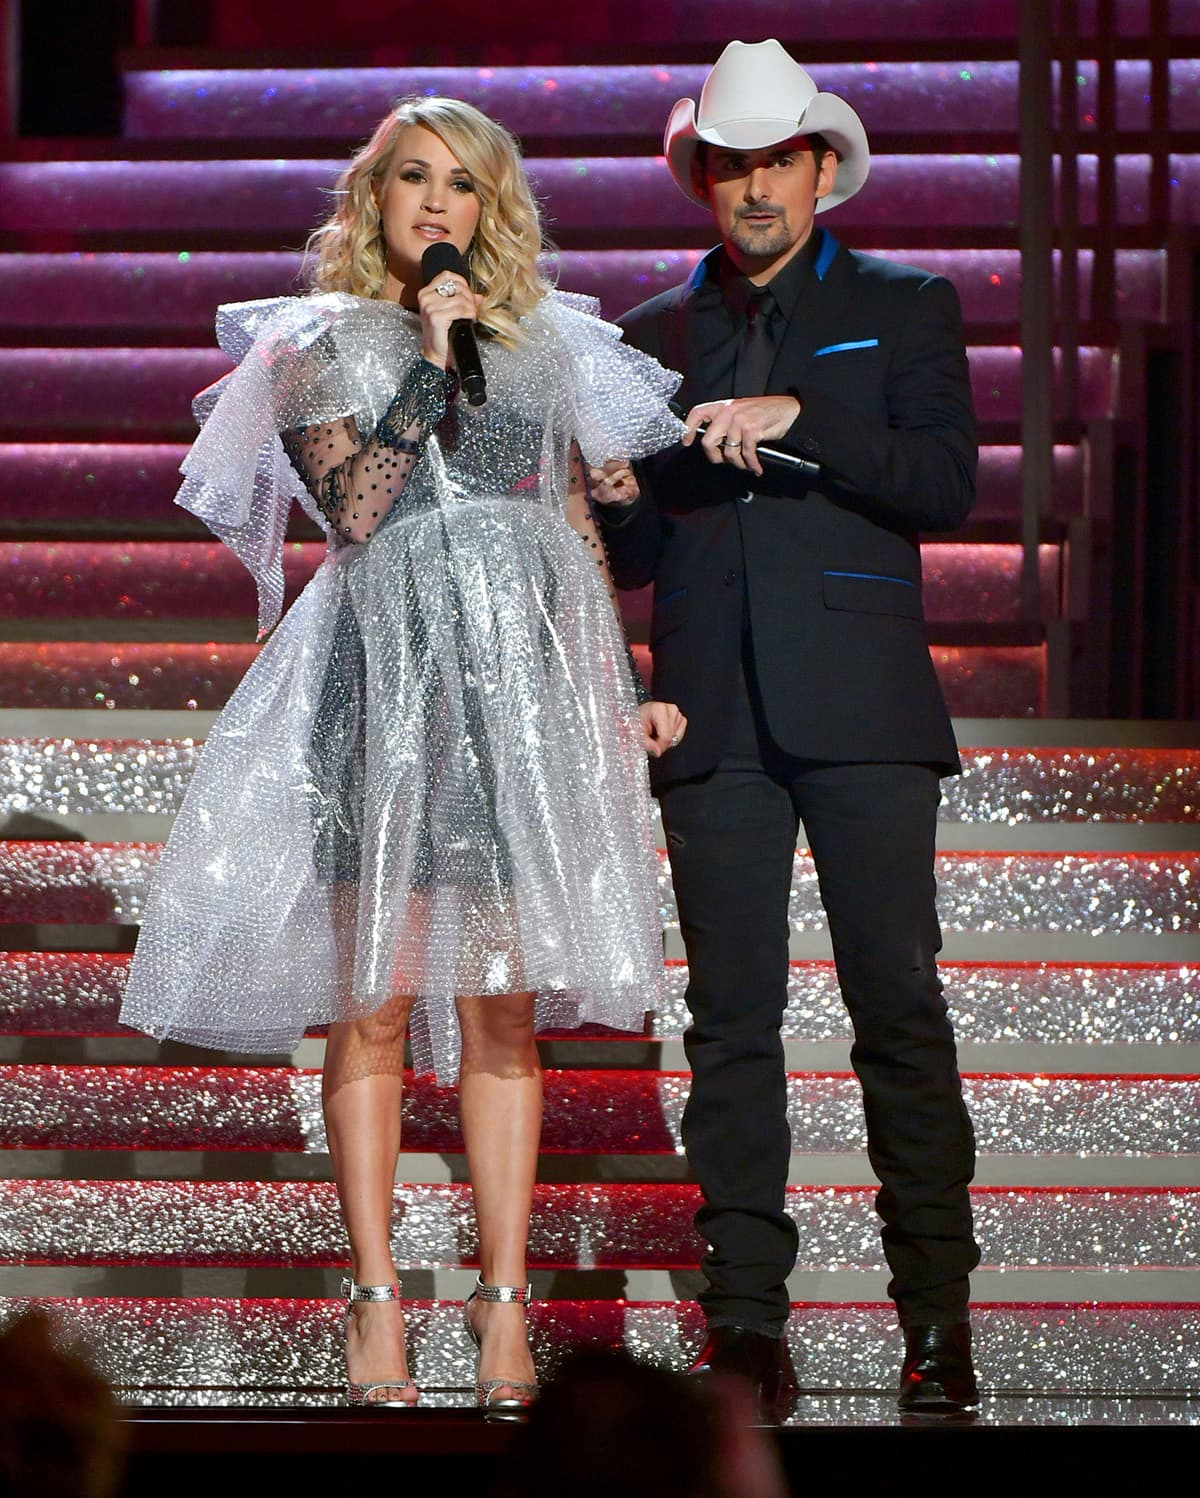 Carrie Underwood at the Country Music Awards